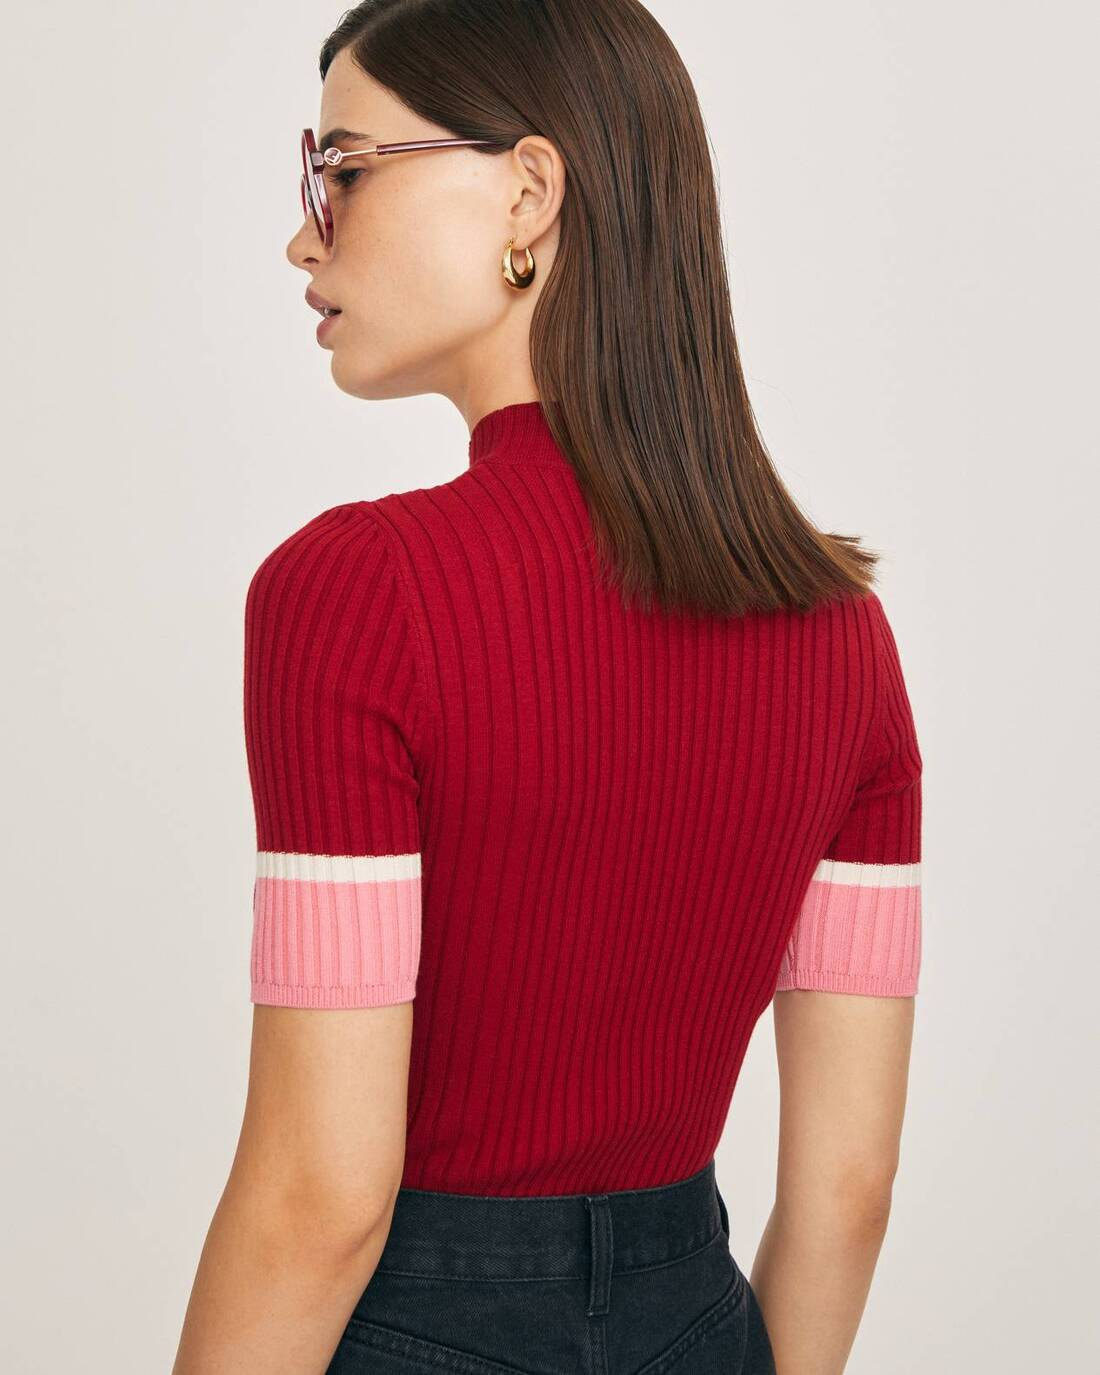 Sweater with contrasting stripes